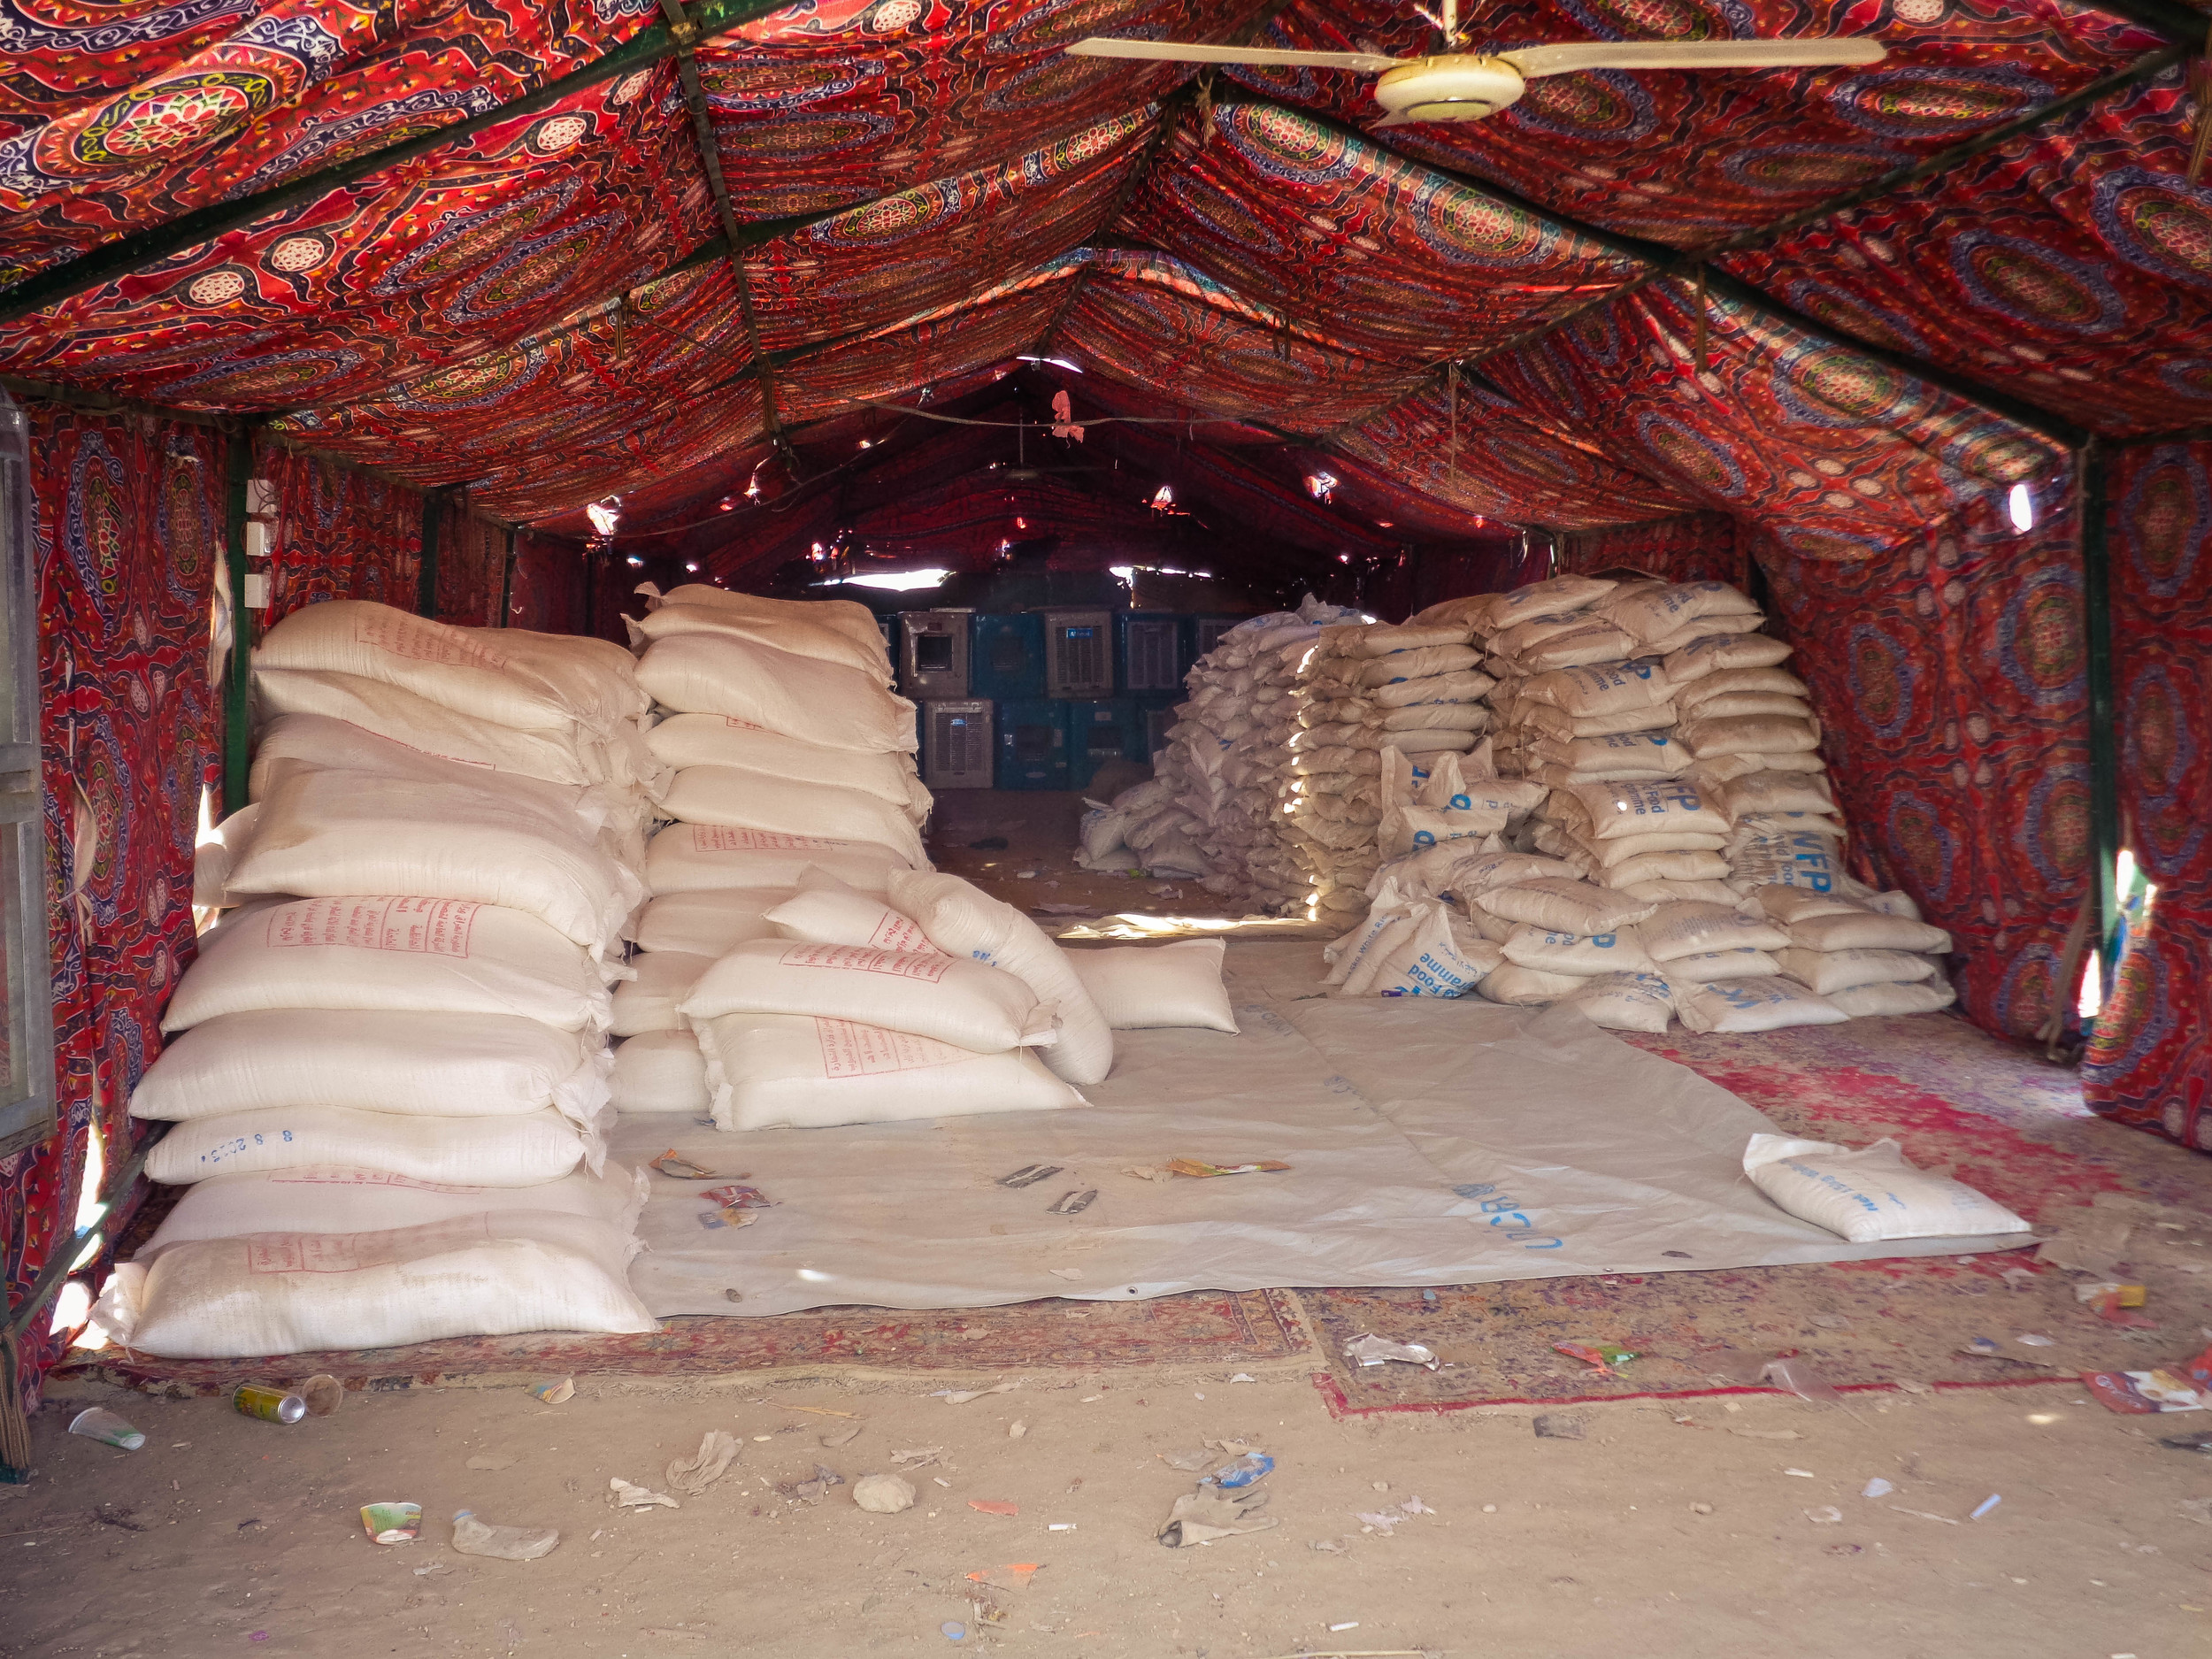 International agencies contribute food and relief items to some of the camps, but the donations are often sporadic and insufficient.